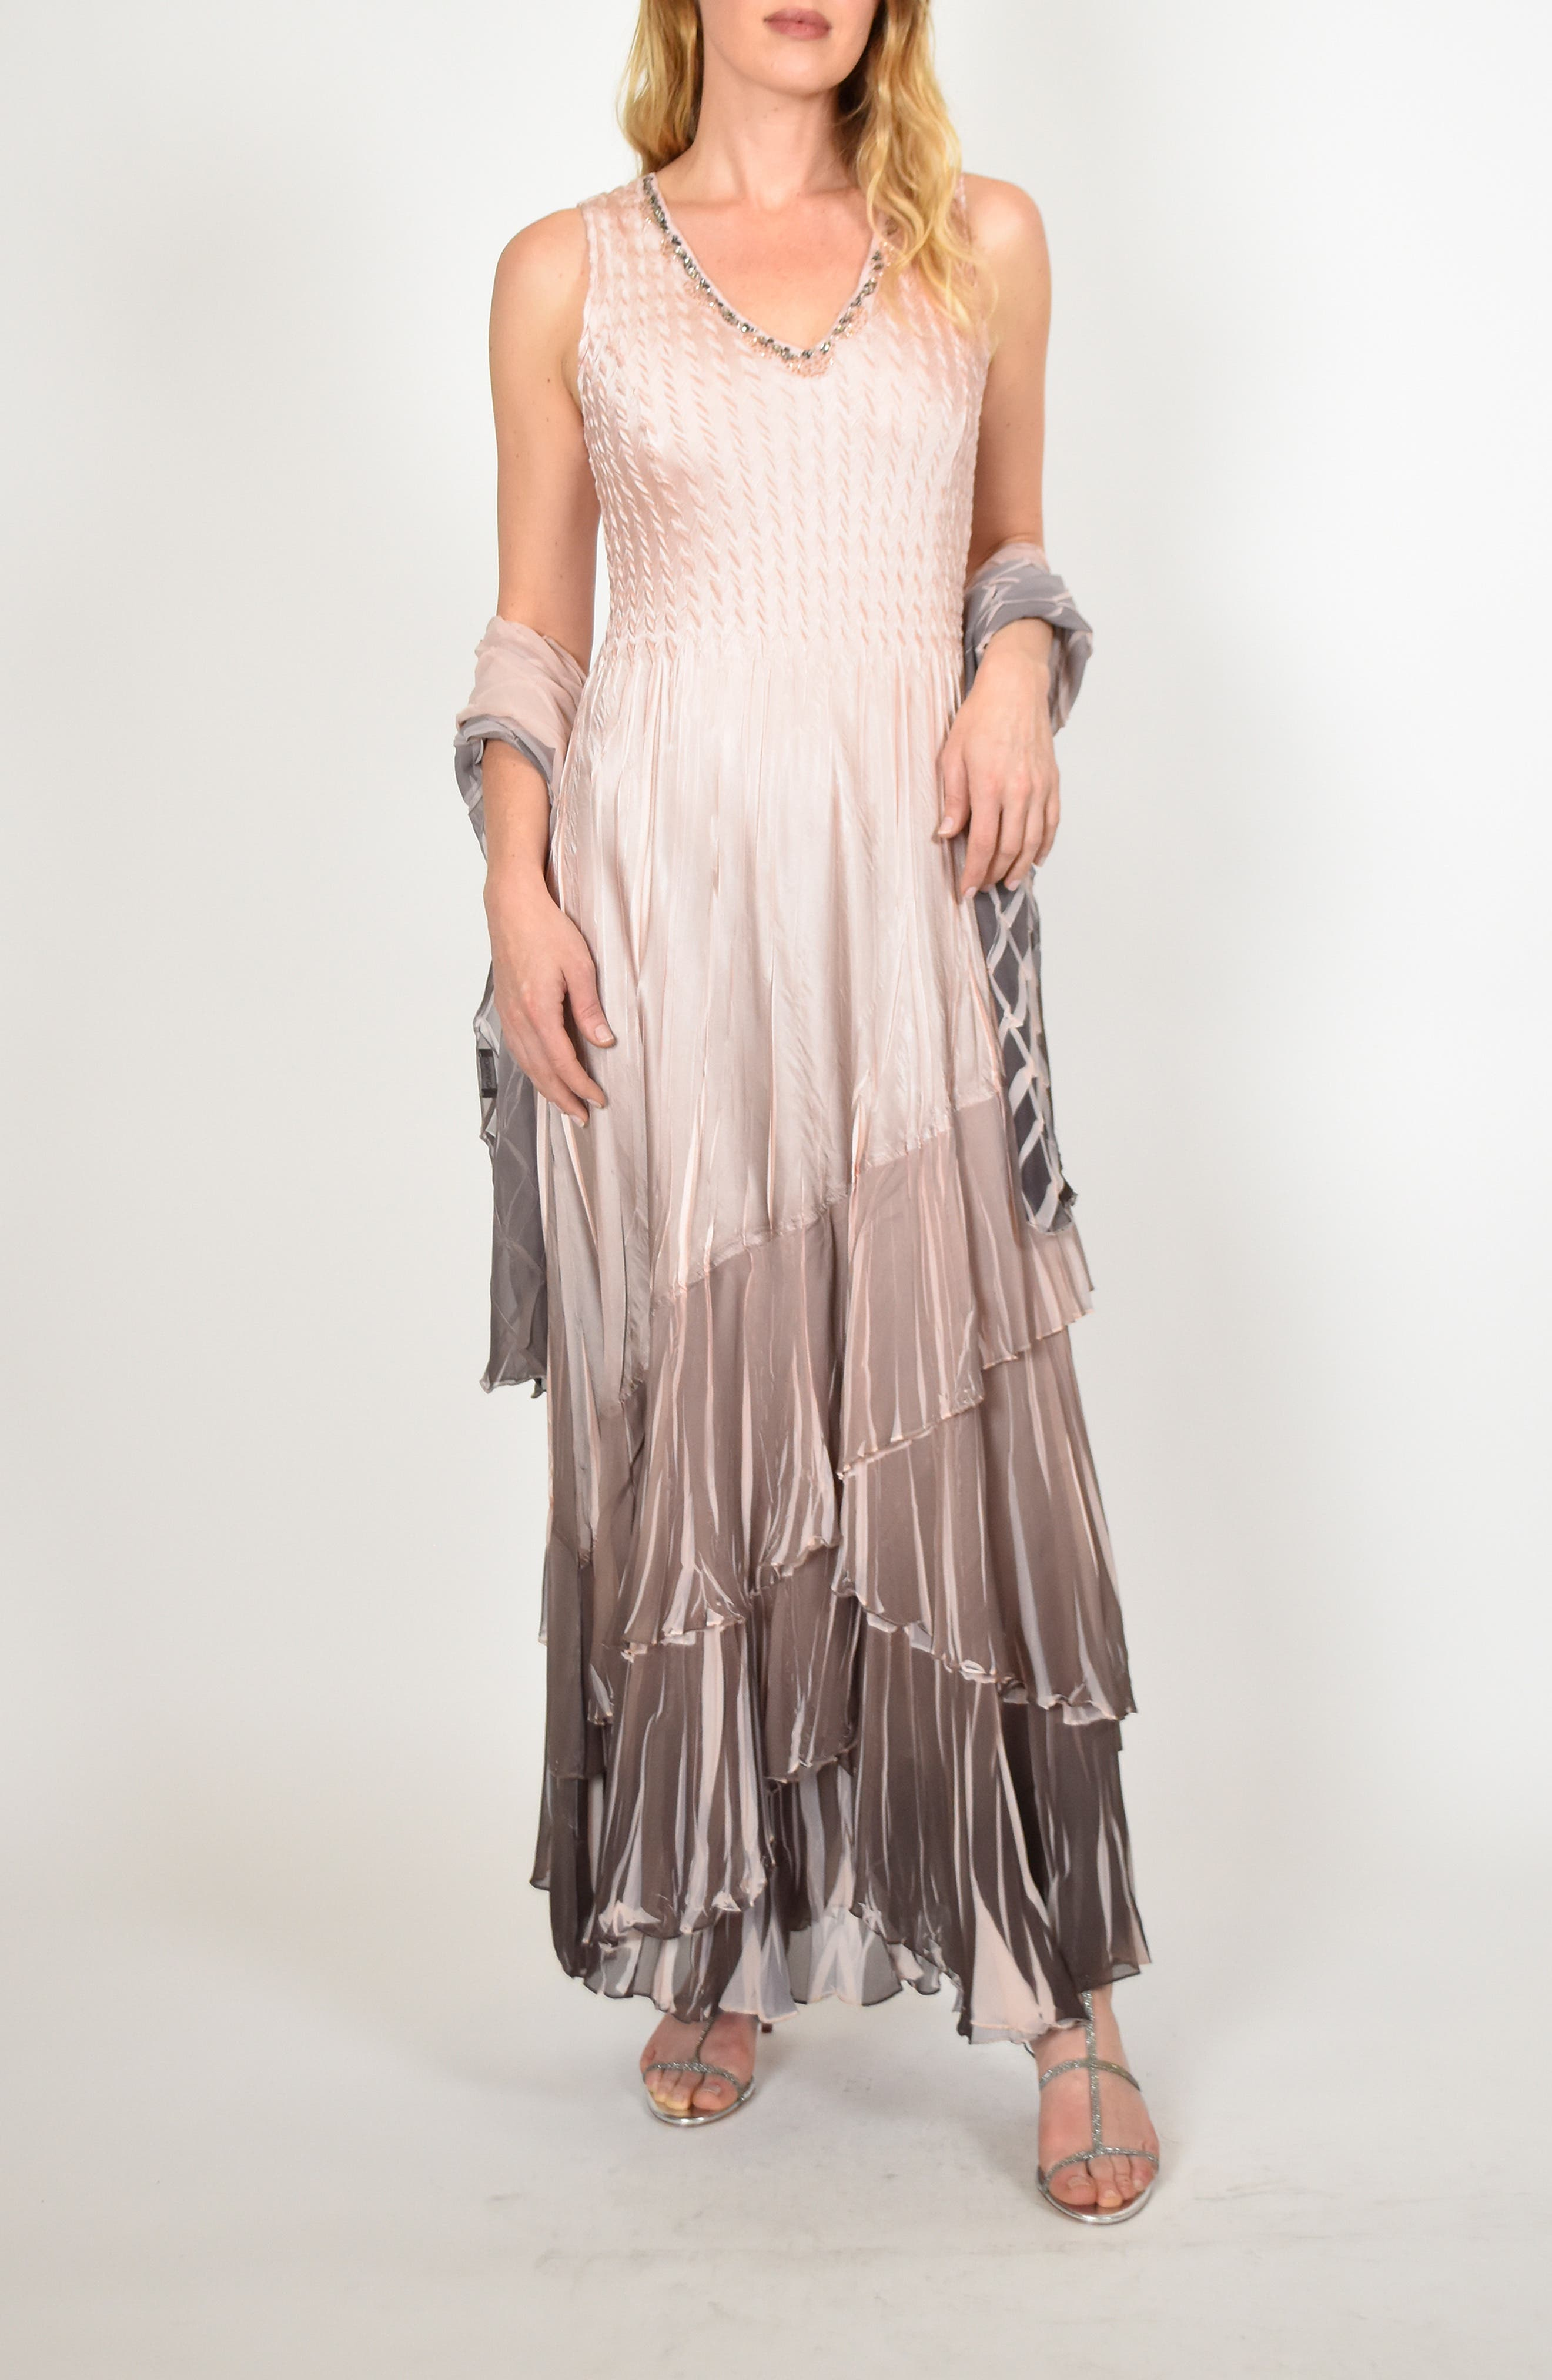 1920s Day Dresses, Tea Dresses, Mature Dresses with Sleeves Womens Komarov Layered Maxi Dress With Wrap $458.00 AT vintagedancer.com